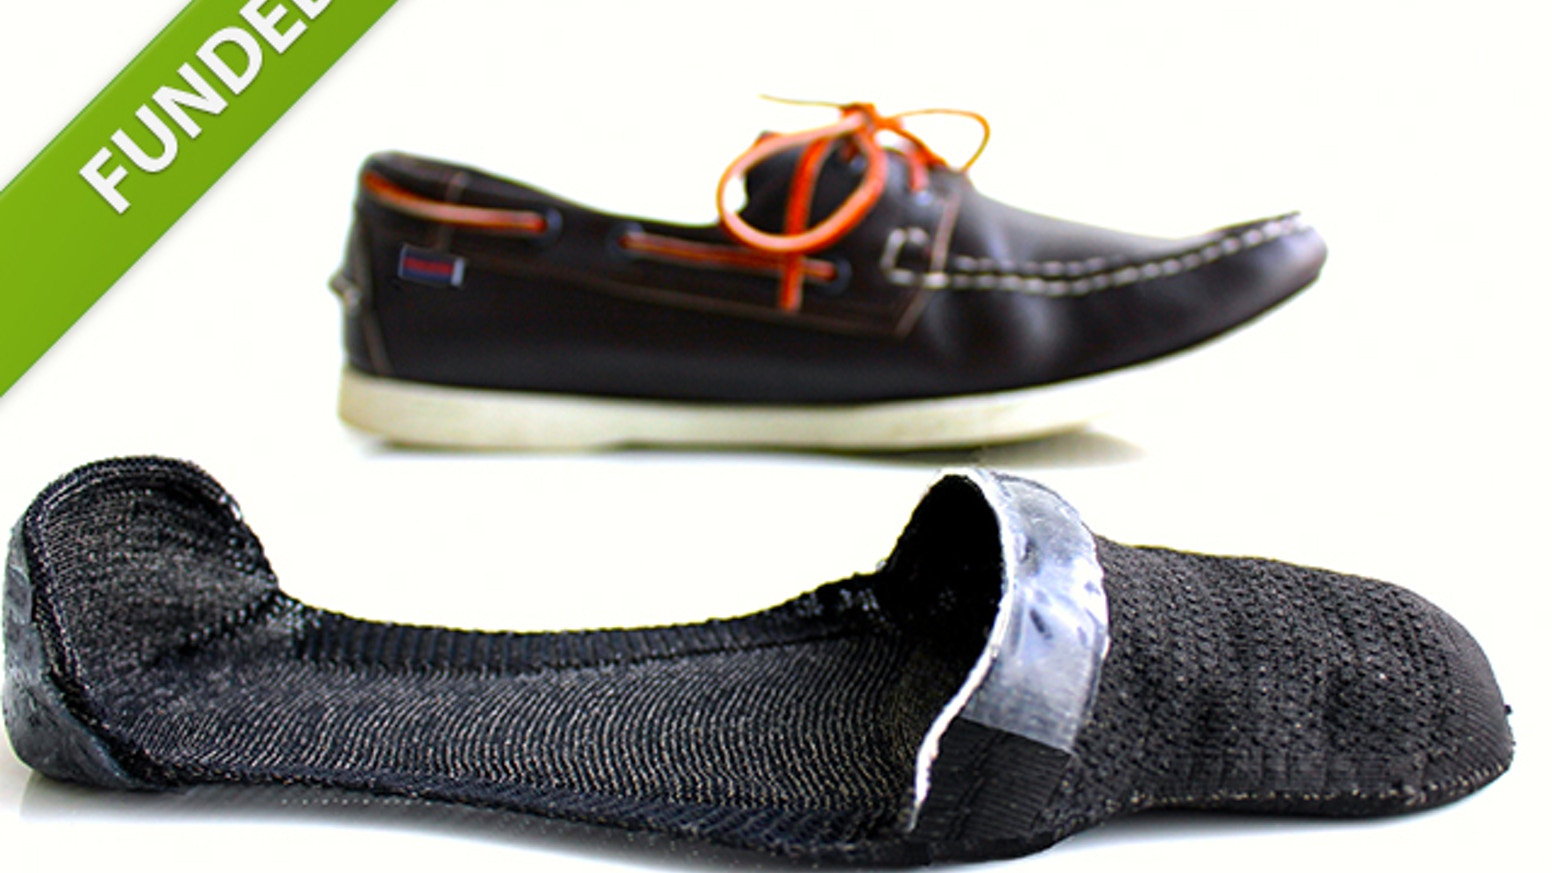 Gekks Sockless Liners deliver comfort, convenience and odor control for the sockless look with boat shoes, drivers, loafers, and more.